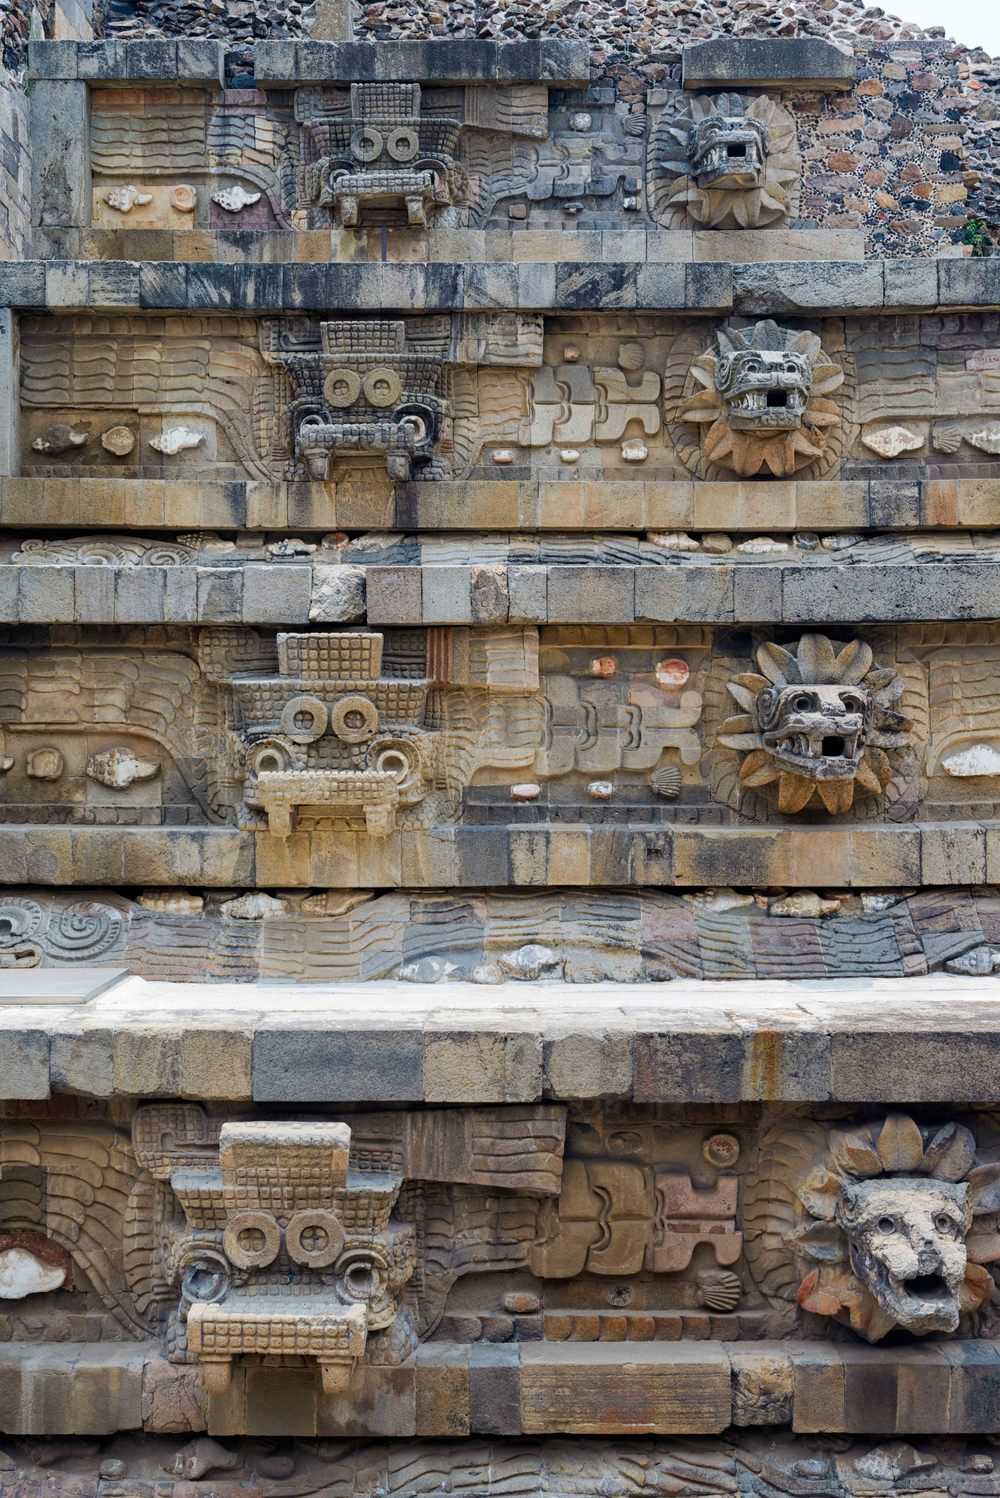 Under each row of heads are  bas-reliefs  of the full feathered serpent, in profile, also associated with water symbols.